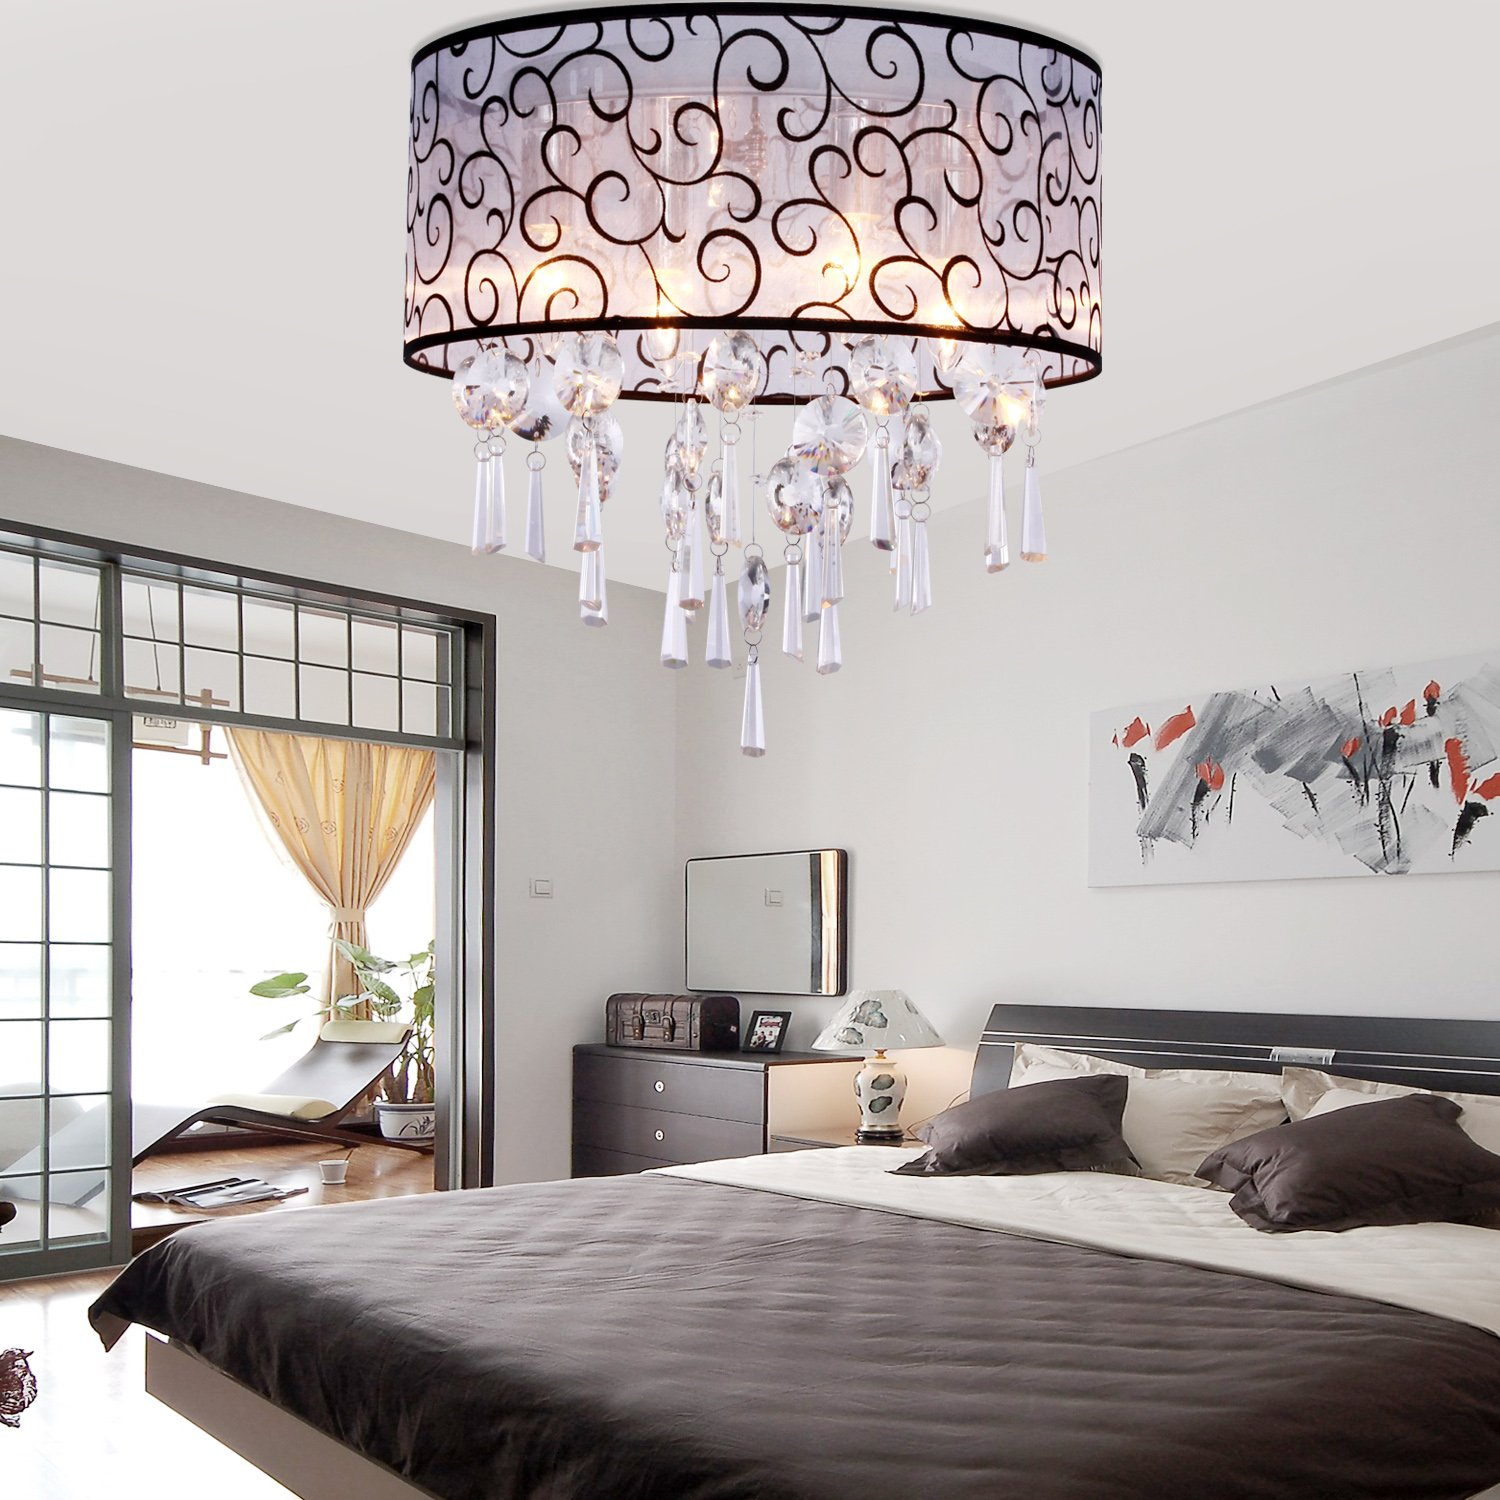 Lightinthebox elegant transparent crystal chandelier with 4 lights lightinthebox elegant transparent crystal chandelier with 4 lights drum flush mount modern ceiling light fixture for bedroom living room bulb not included mozeypictures Image collections